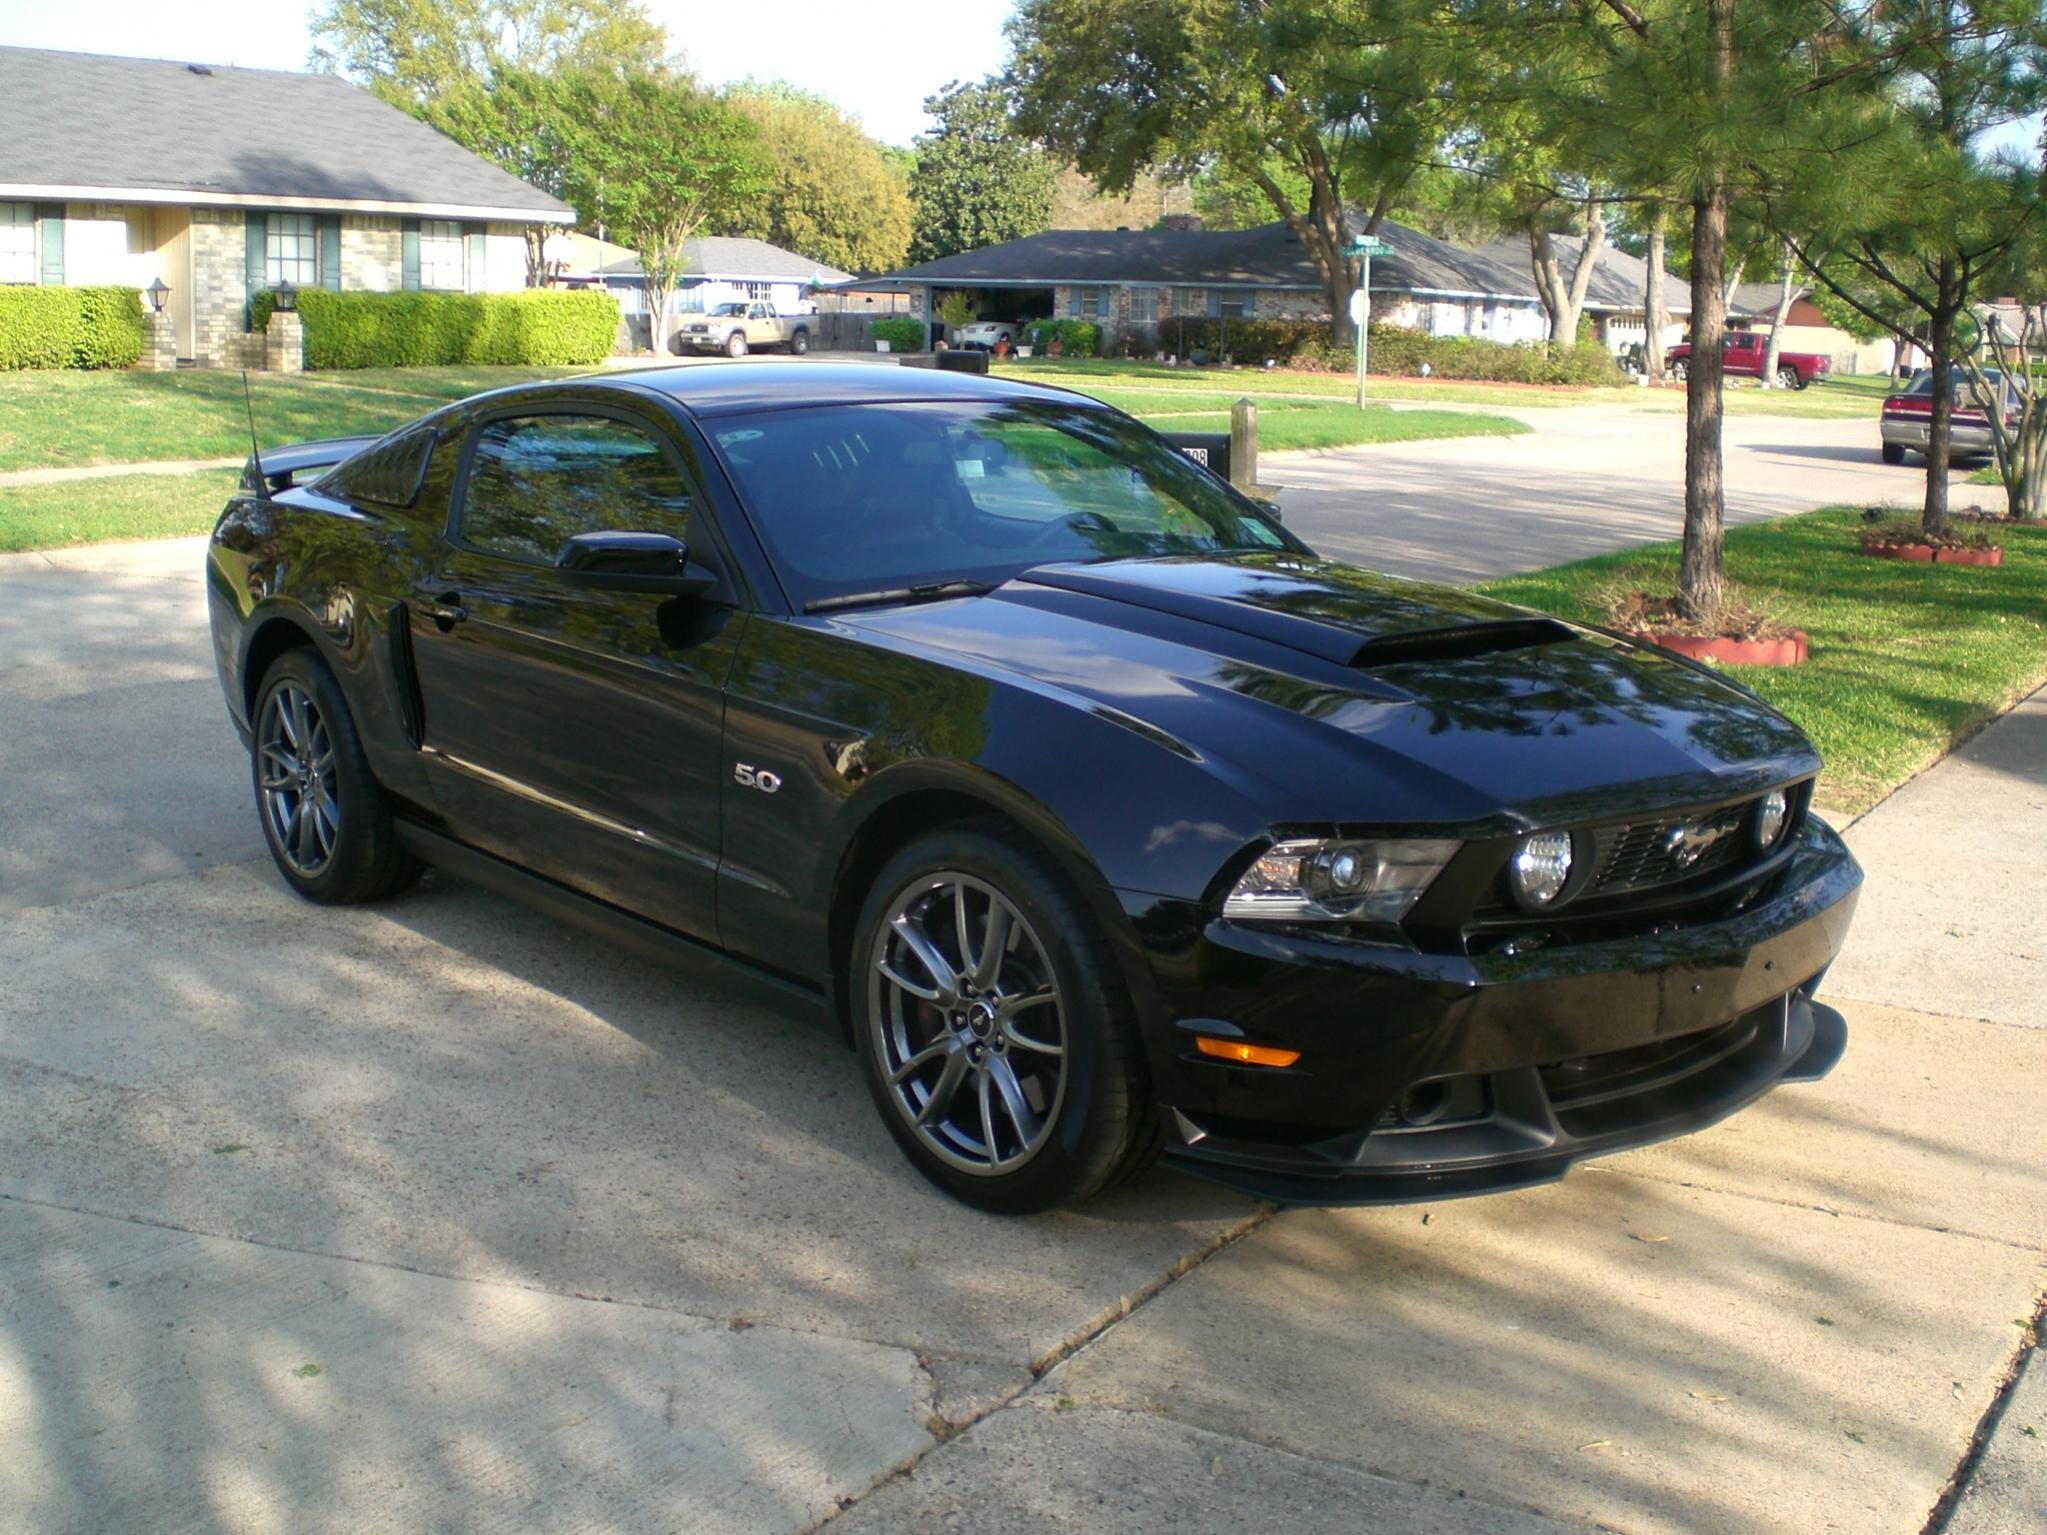 boss 302 valence and splitter install on 2011 gt ford. Black Bedroom Furniture Sets. Home Design Ideas